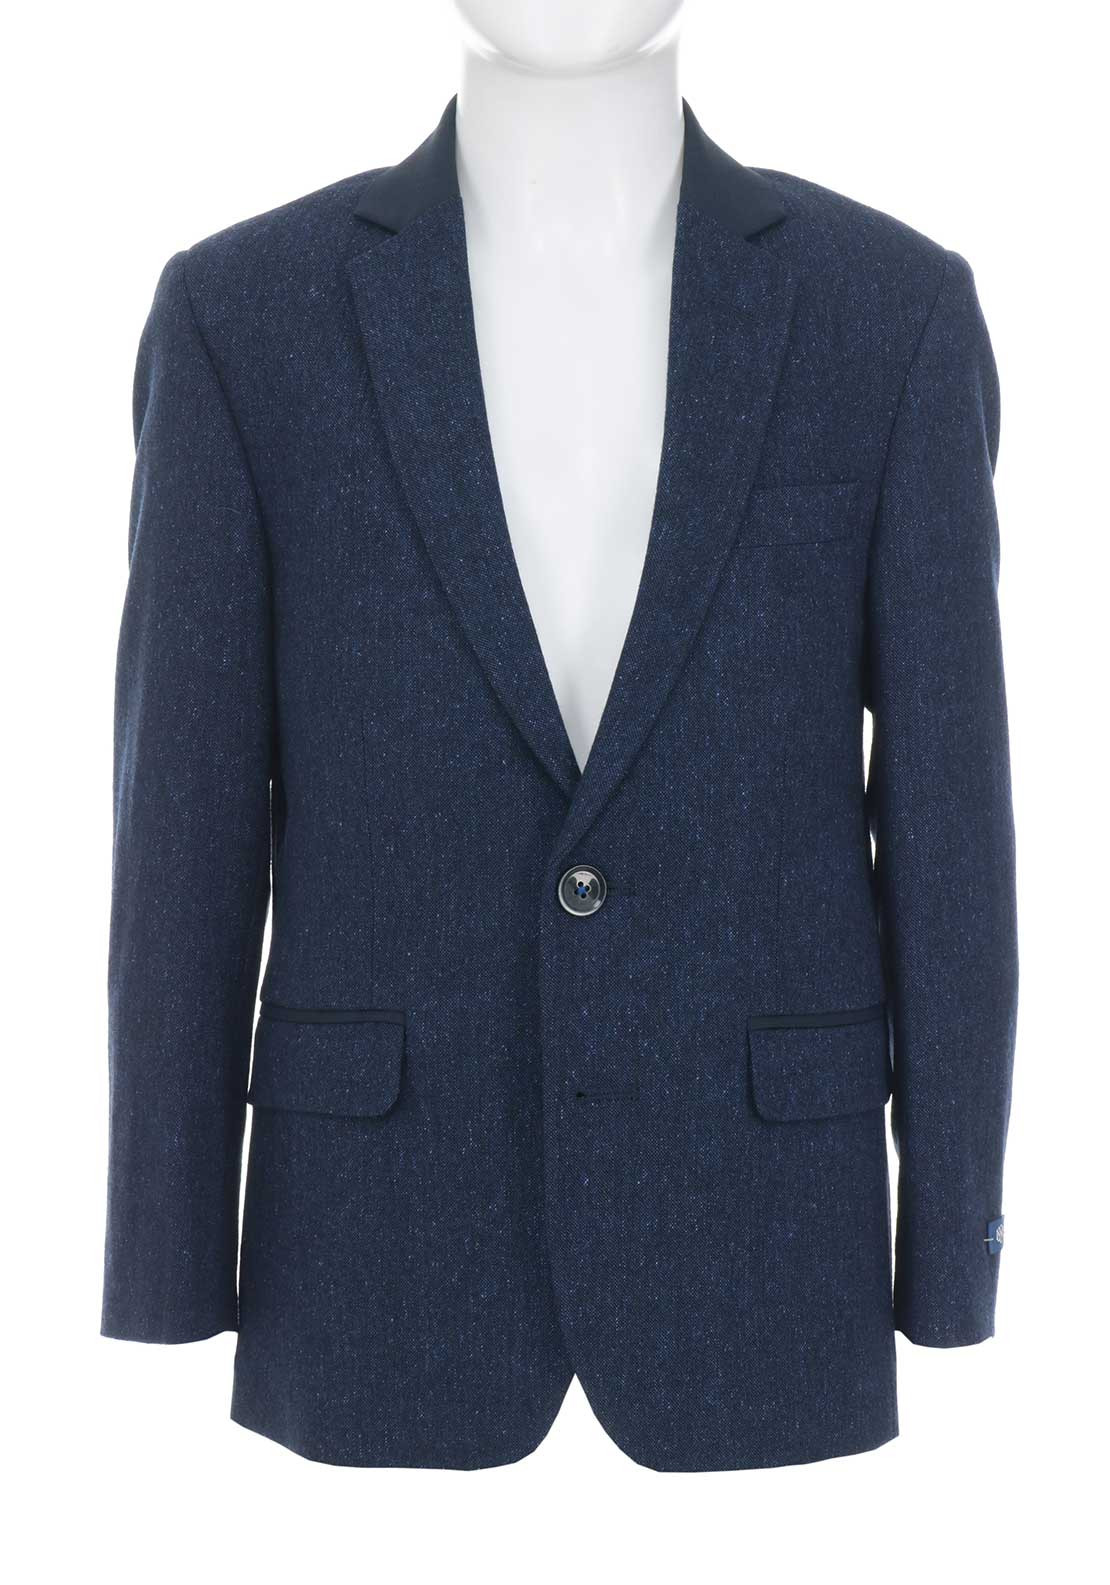 1880 Club Boys Wool Blend Tweed Blazer, Navy